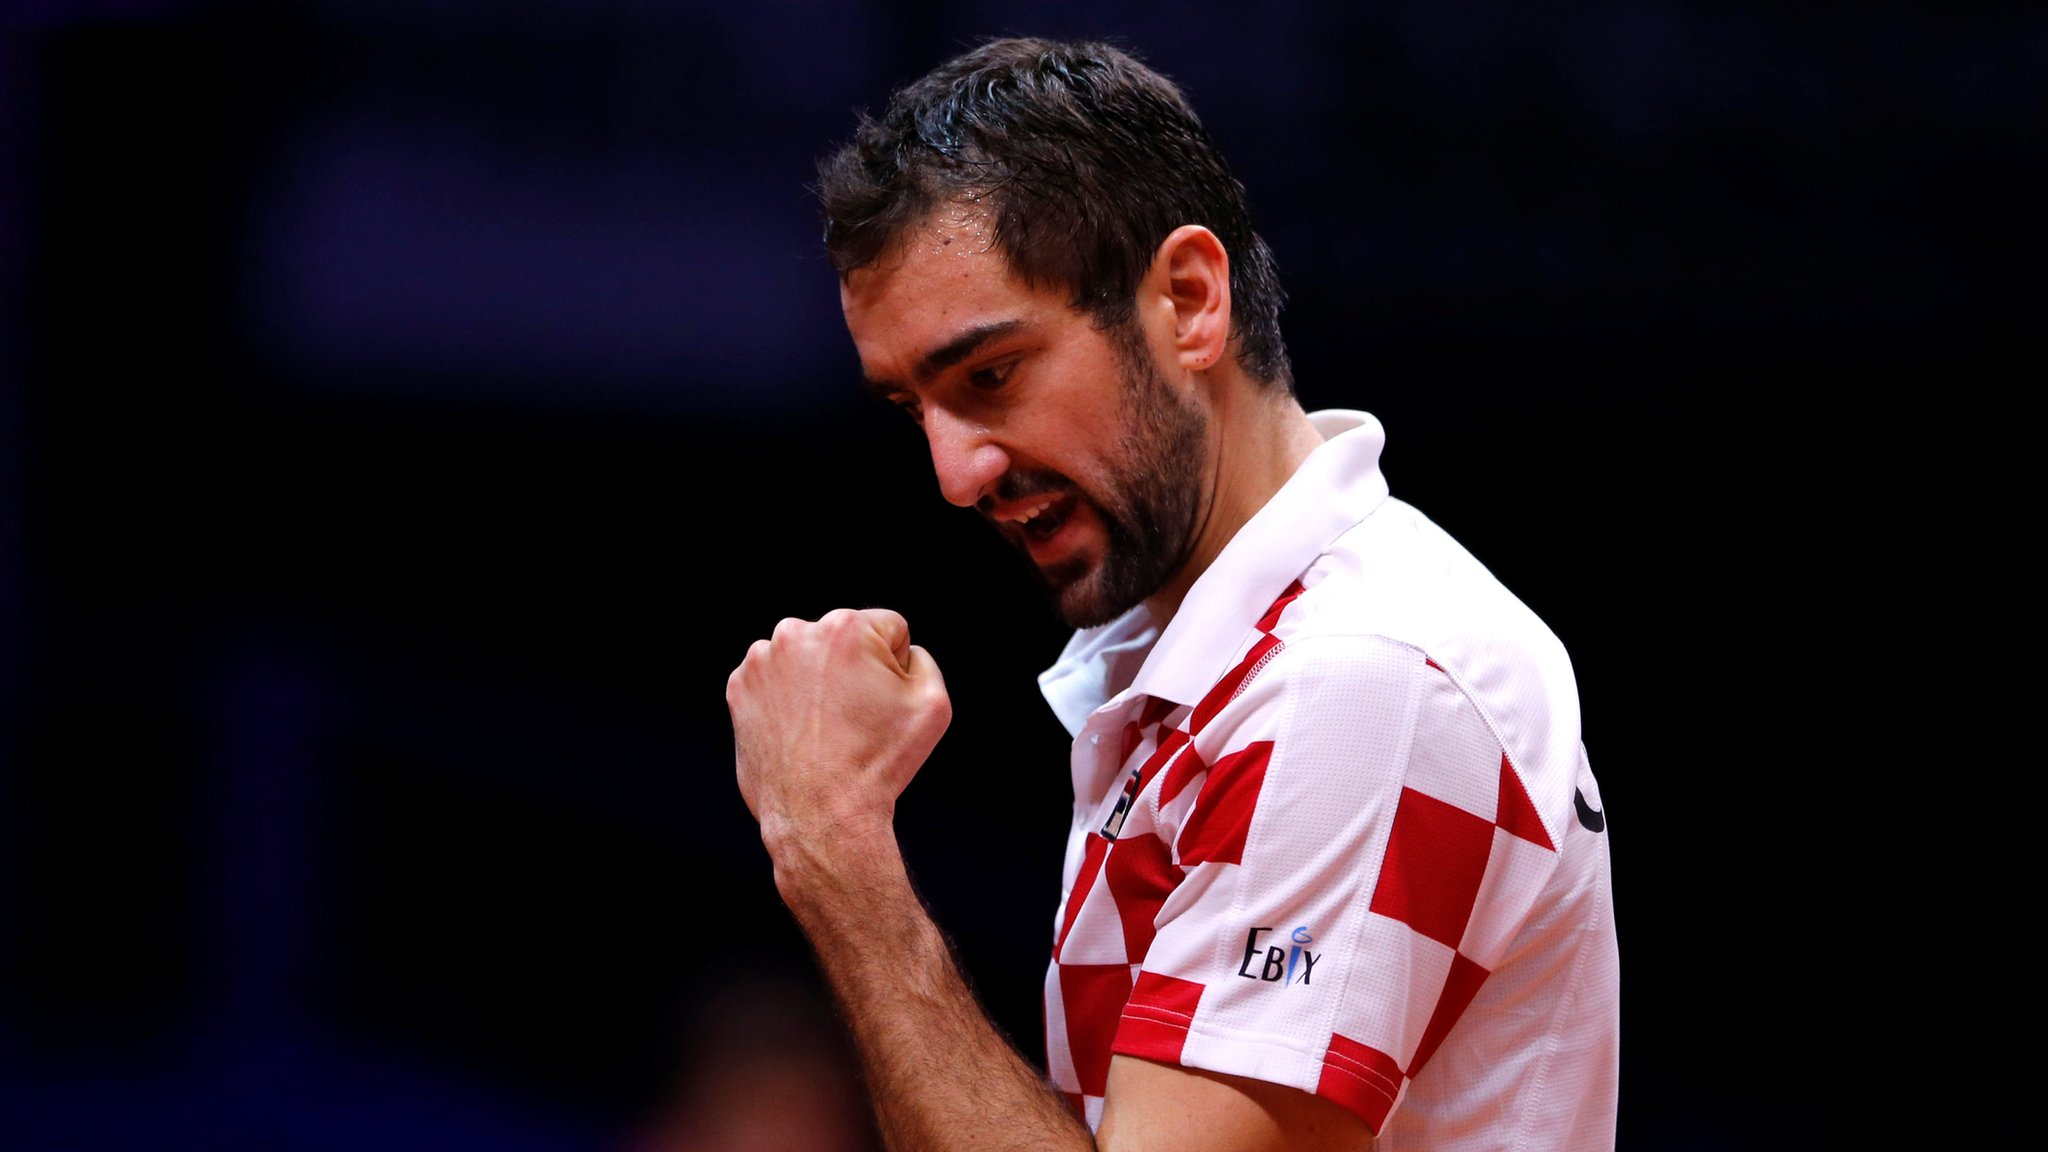 Davis Cup: Marin Cilic and Borna Coric put Croatia 2-0 up in final